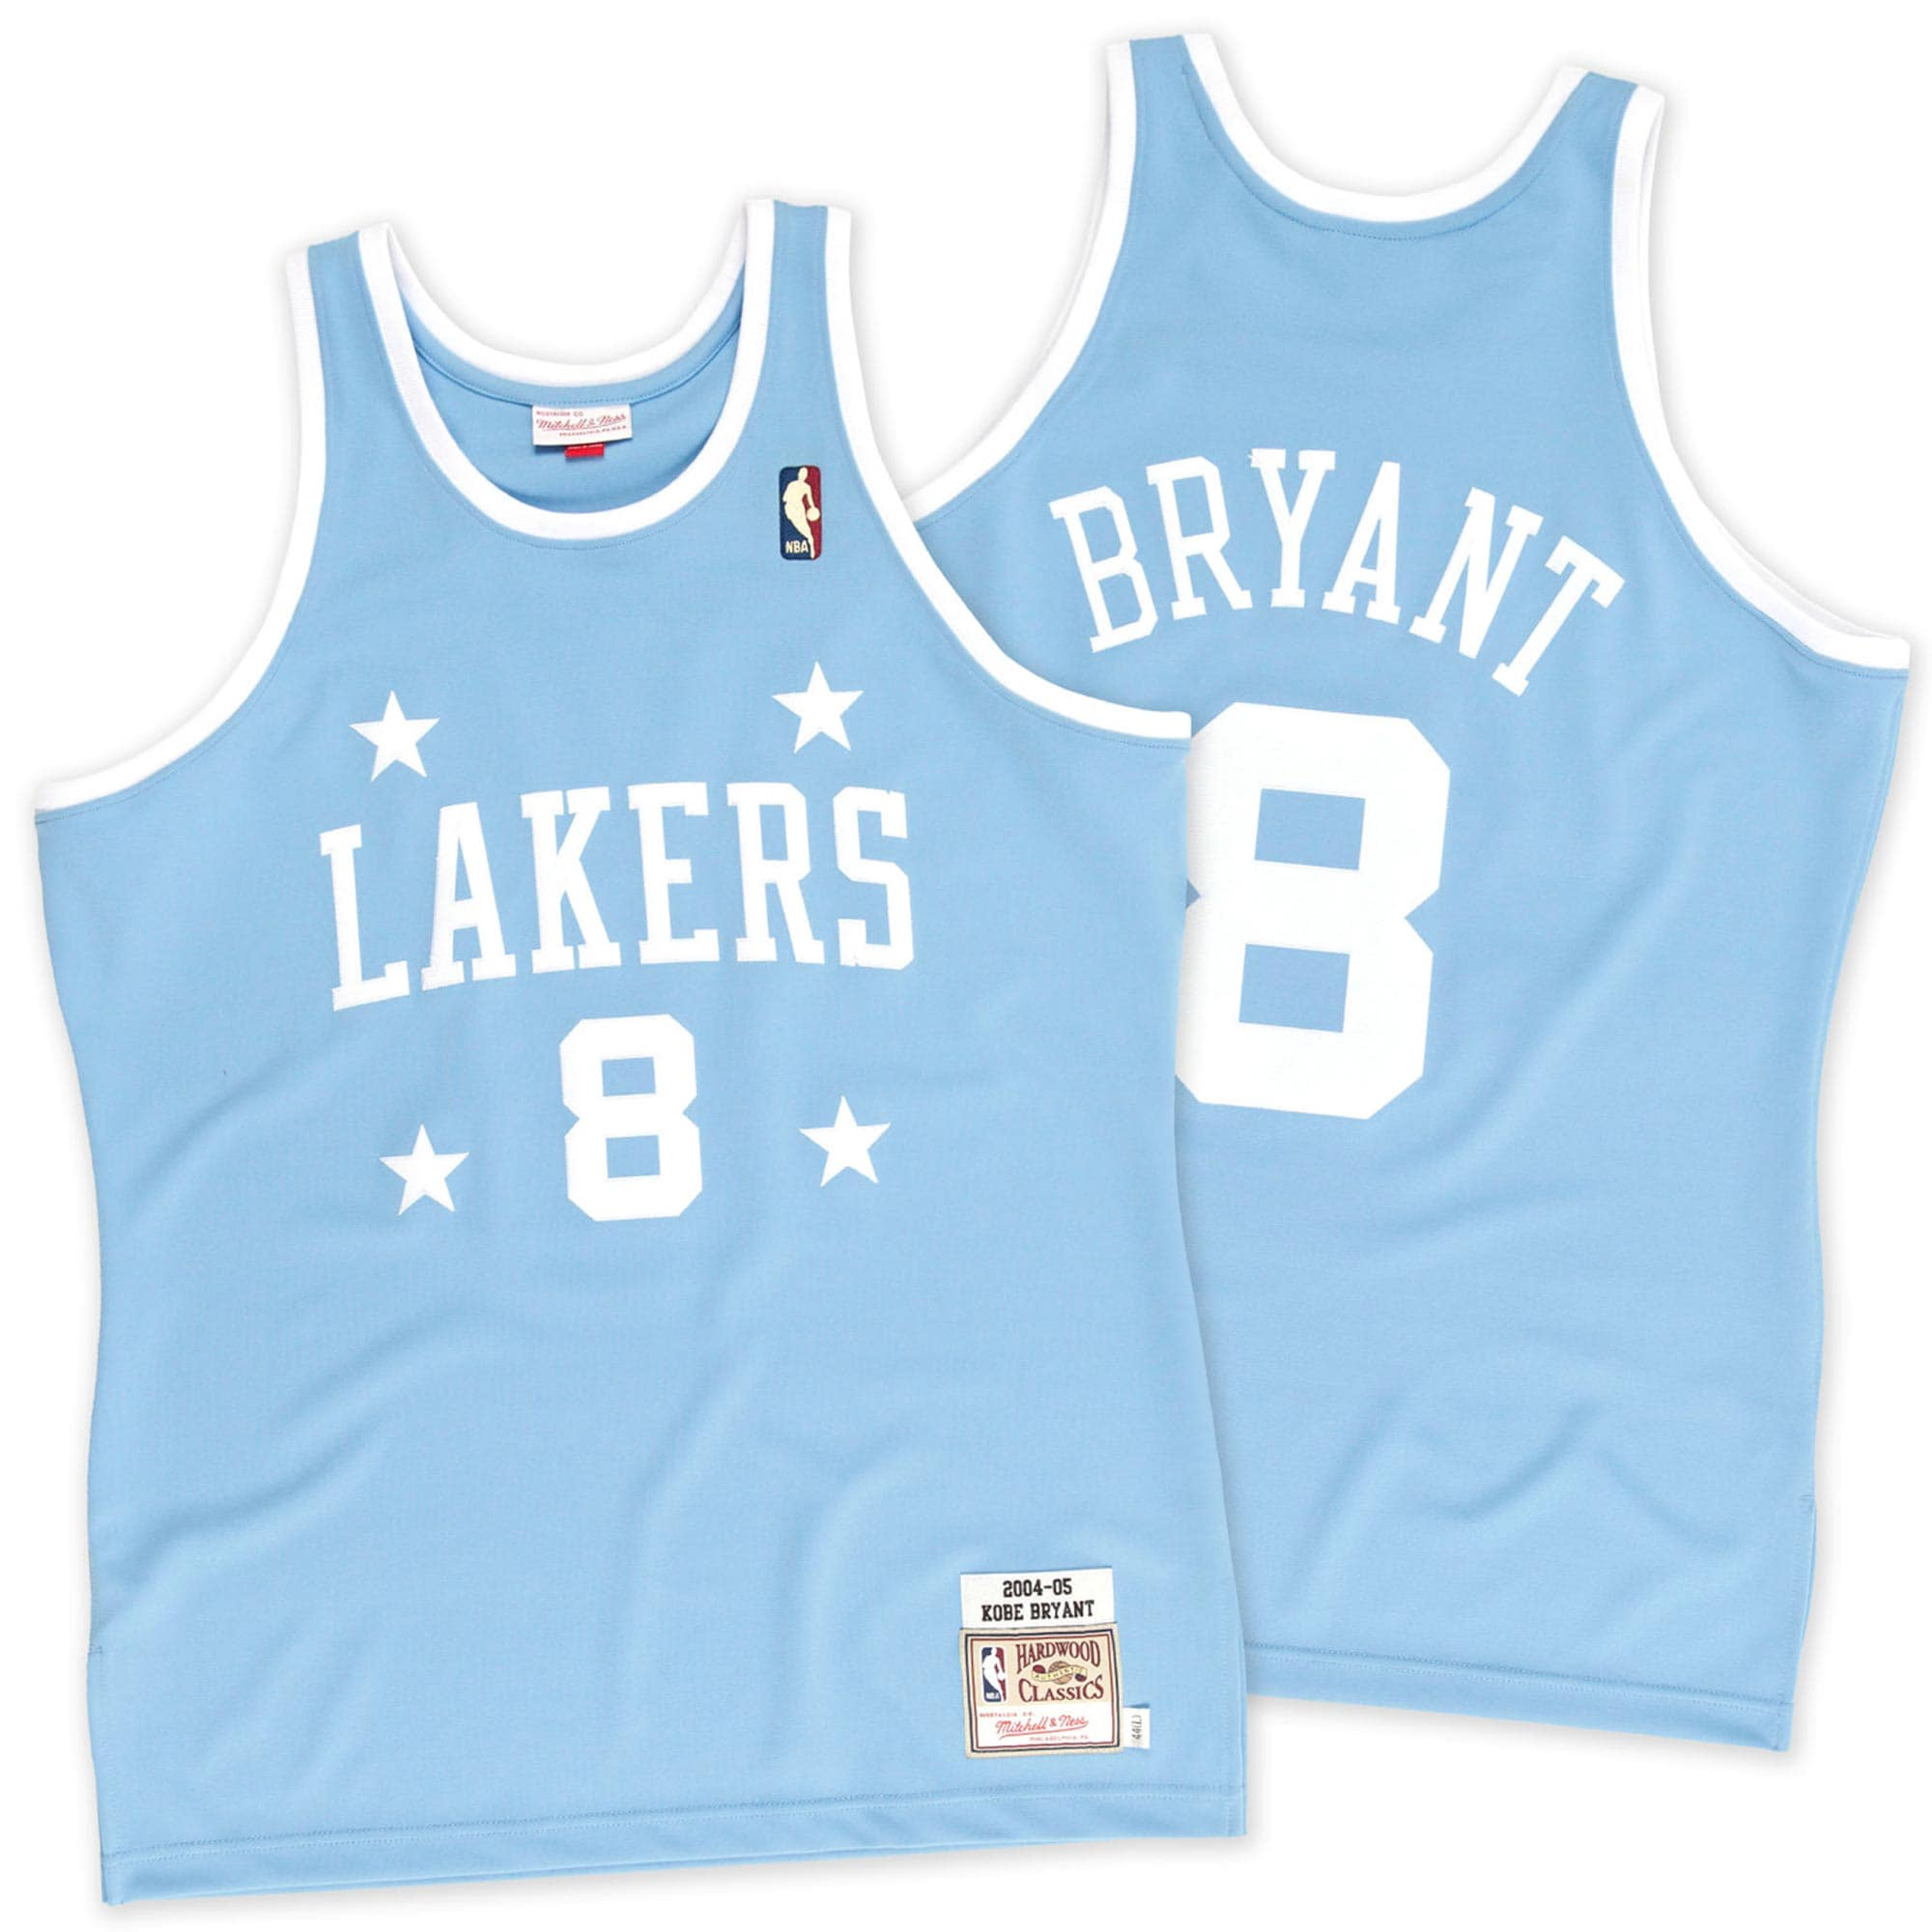 Kobe Bryant Los Angeles Lakers Mitchell & Ness 2004-2005 #8 Authentic Jersey - Light Blue